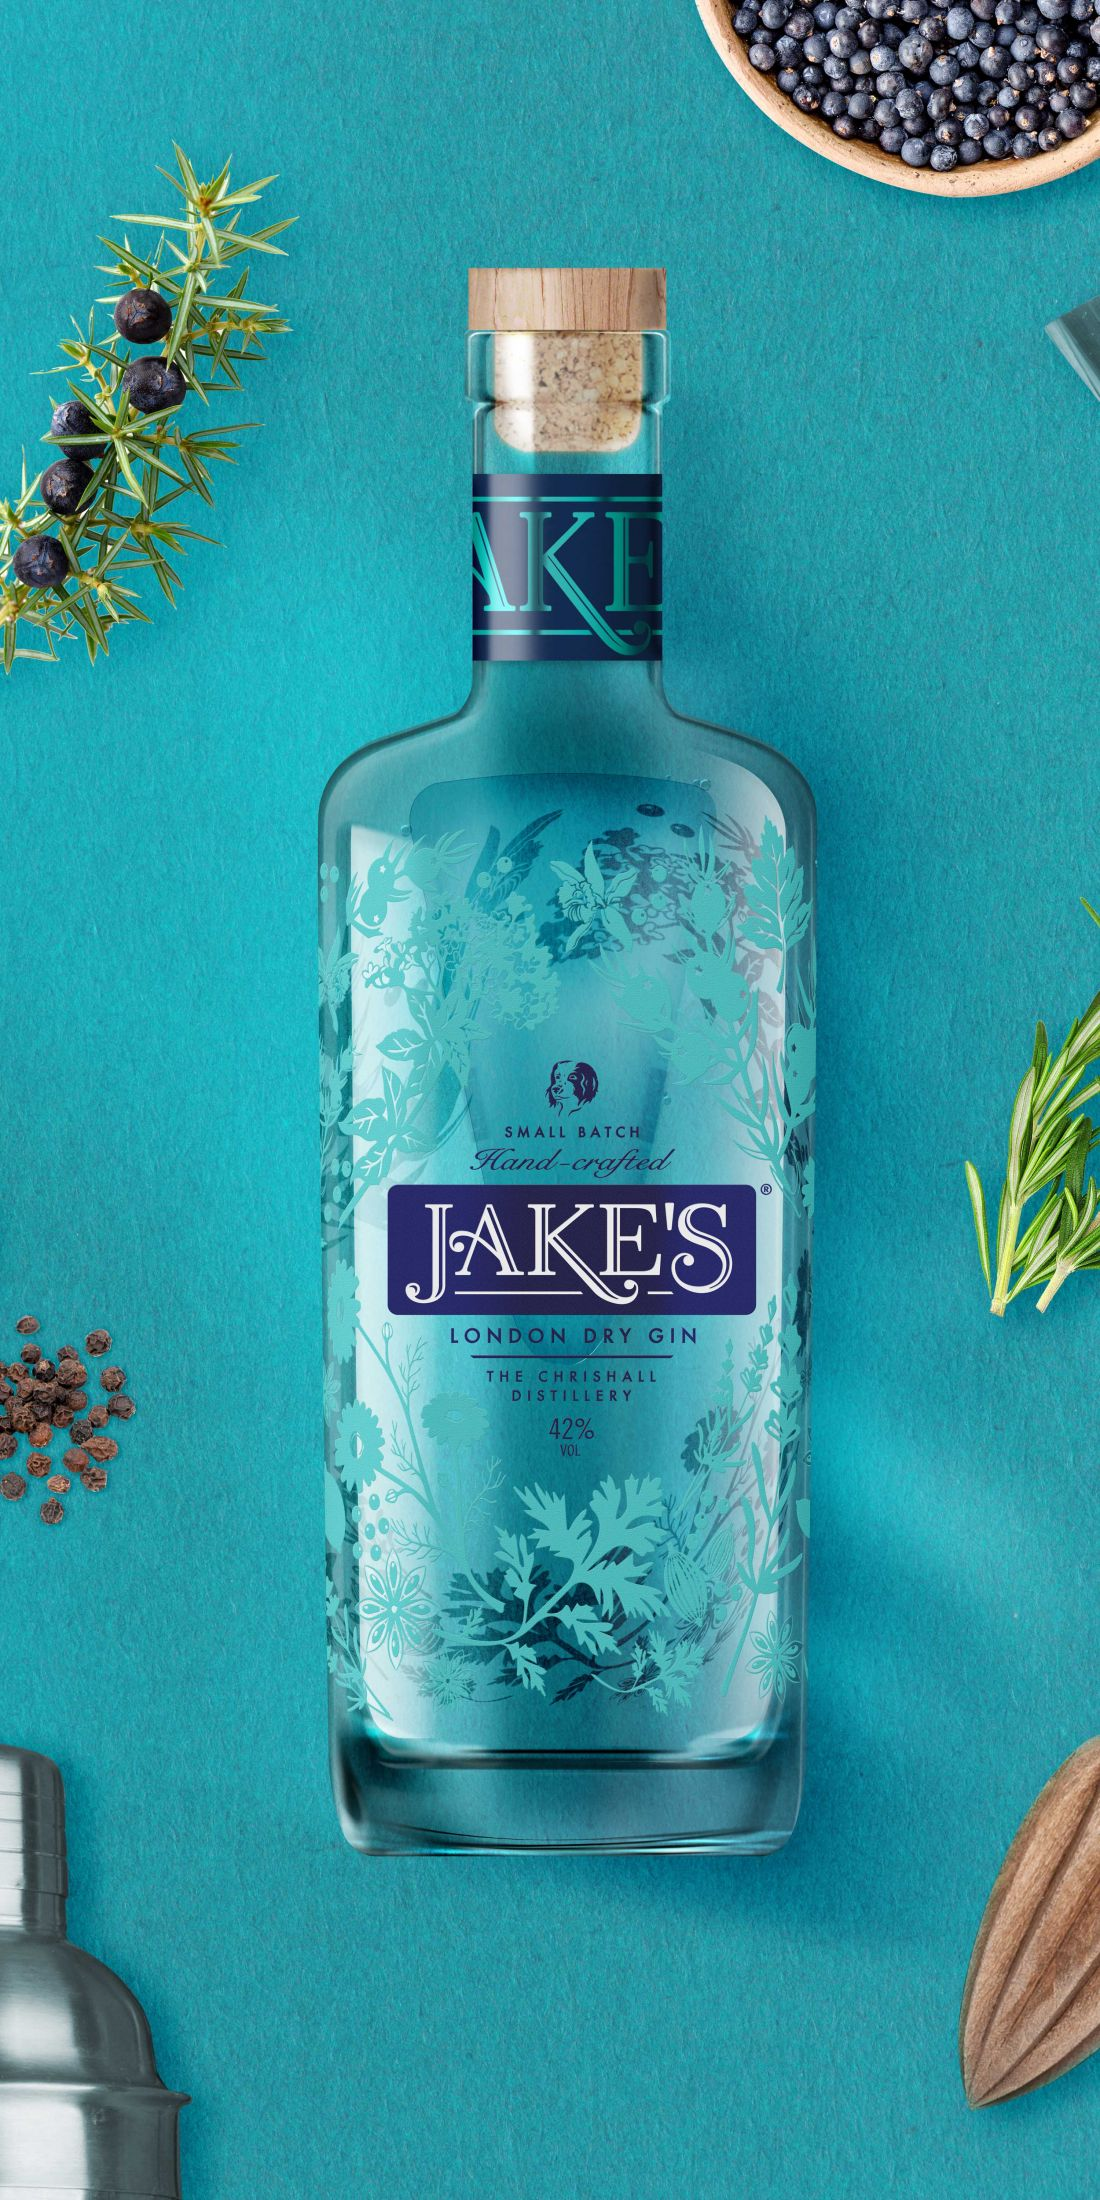 Design Activity's exquisite packaging design for handmade, small-batch Jake's Gin